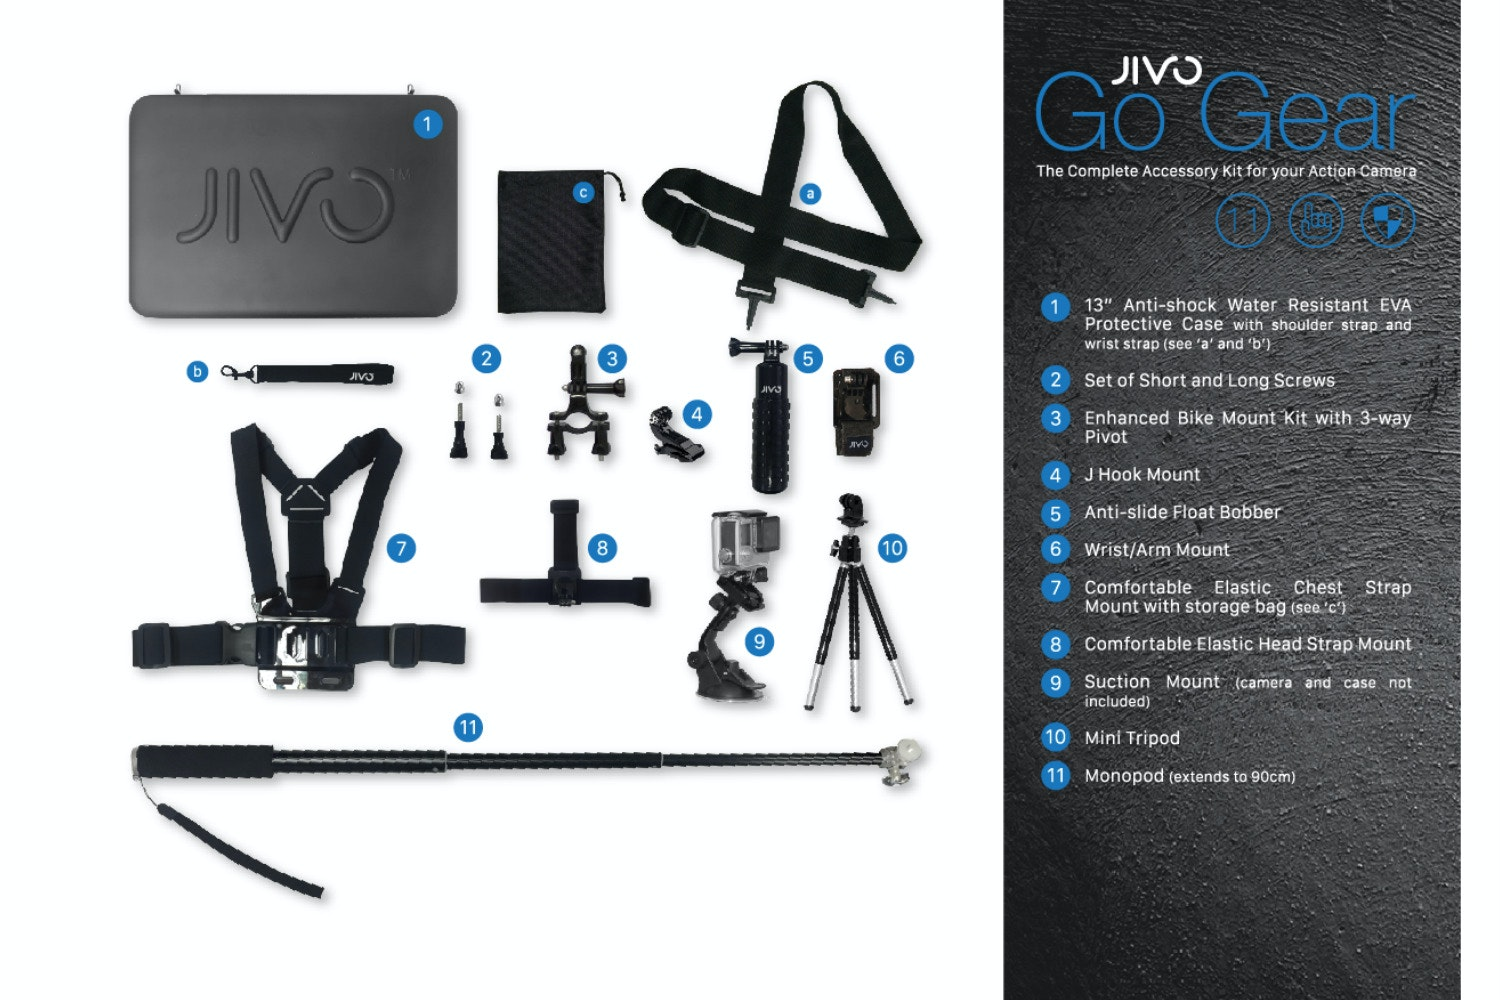 Jivo GoGear GoPro 11-Piece Accessory Kit